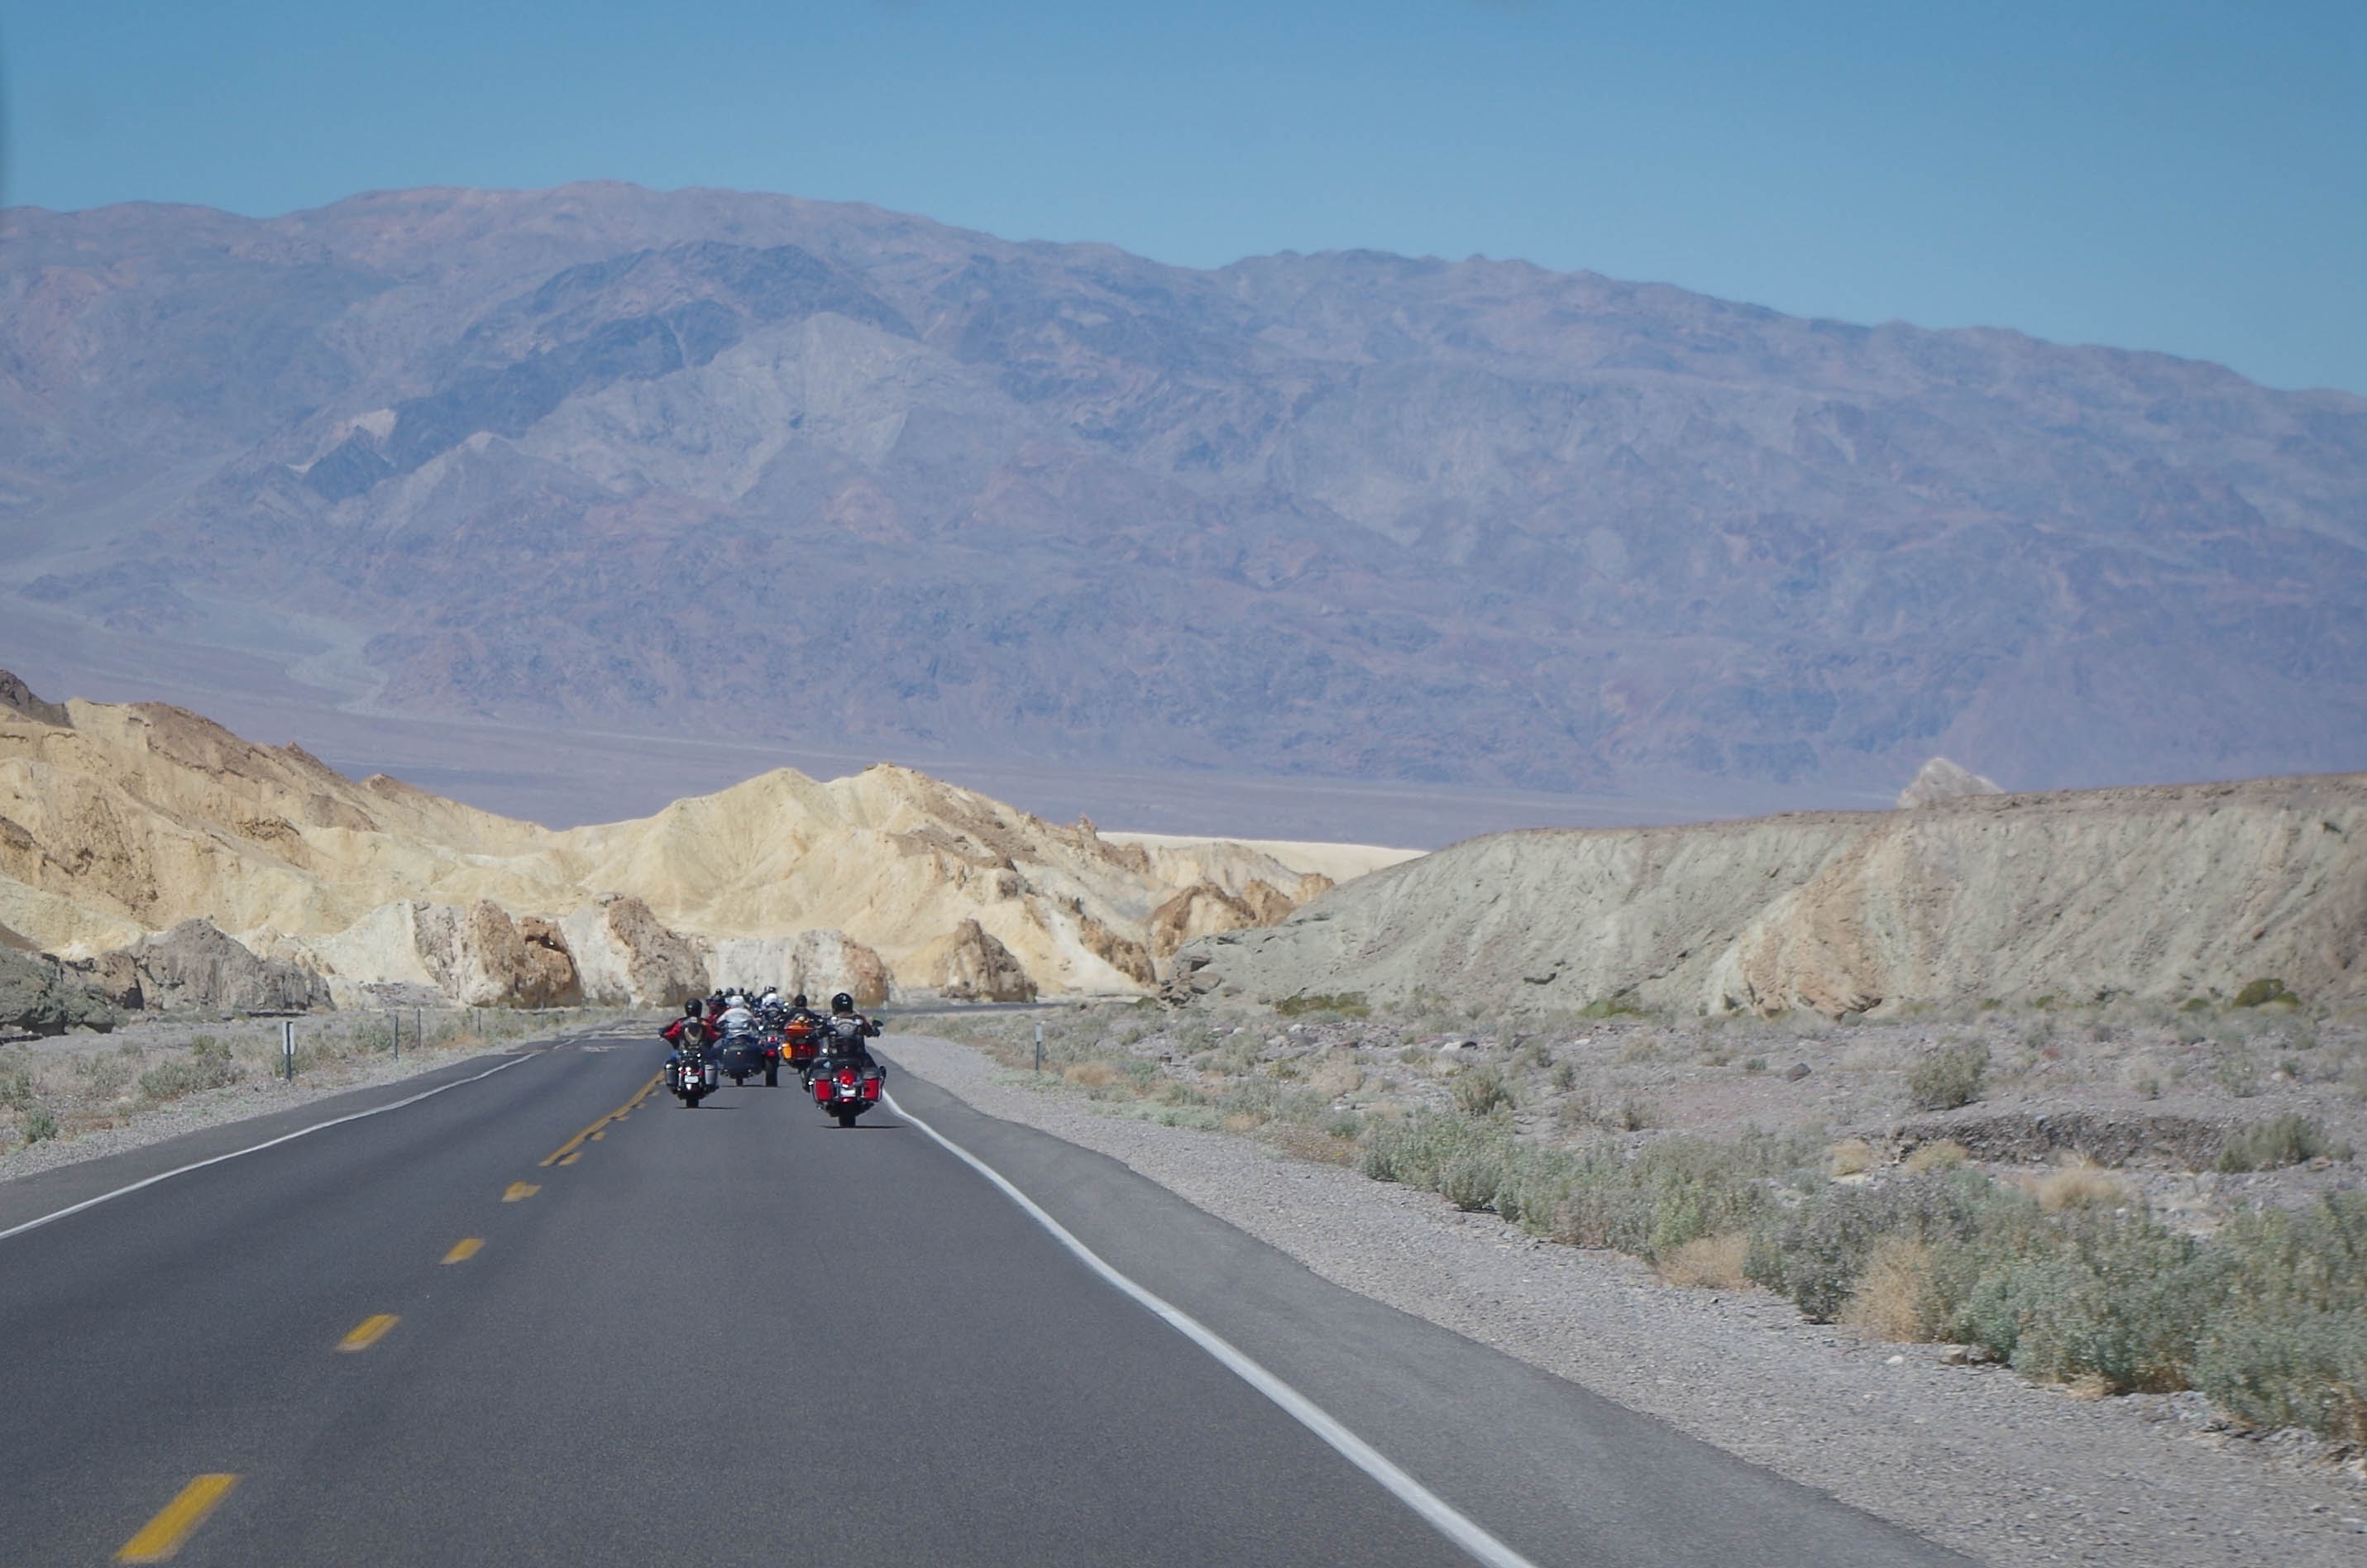 One Day in Death Valley - Beyond These Borders